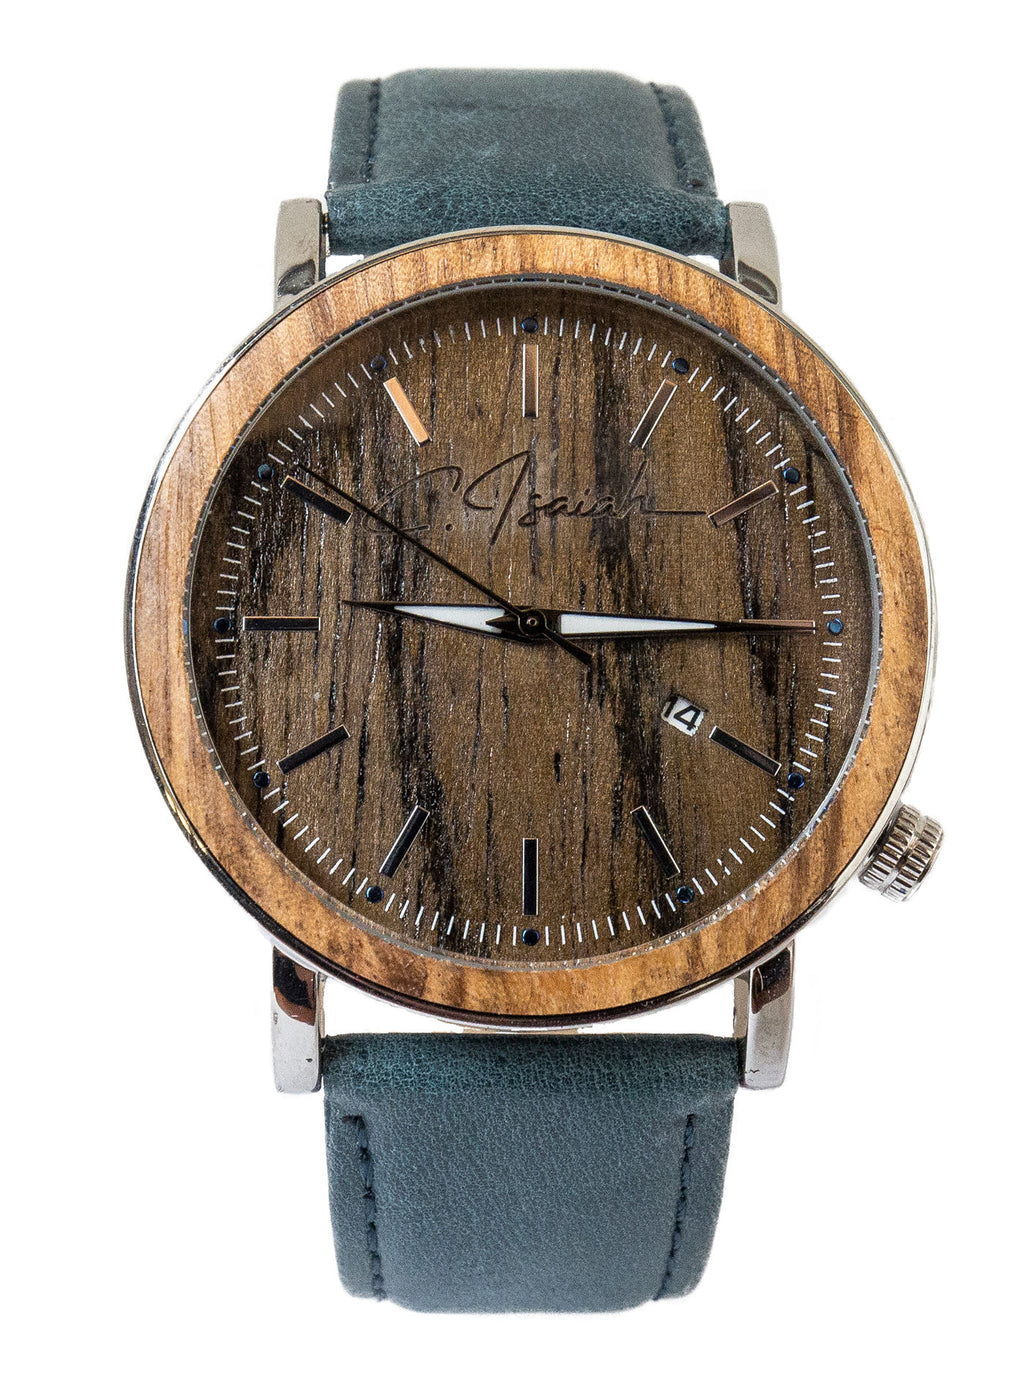 The Graduate - Wood Watch, Wooden Watch for Men, [Gifts for Men],- Carter Isaiah